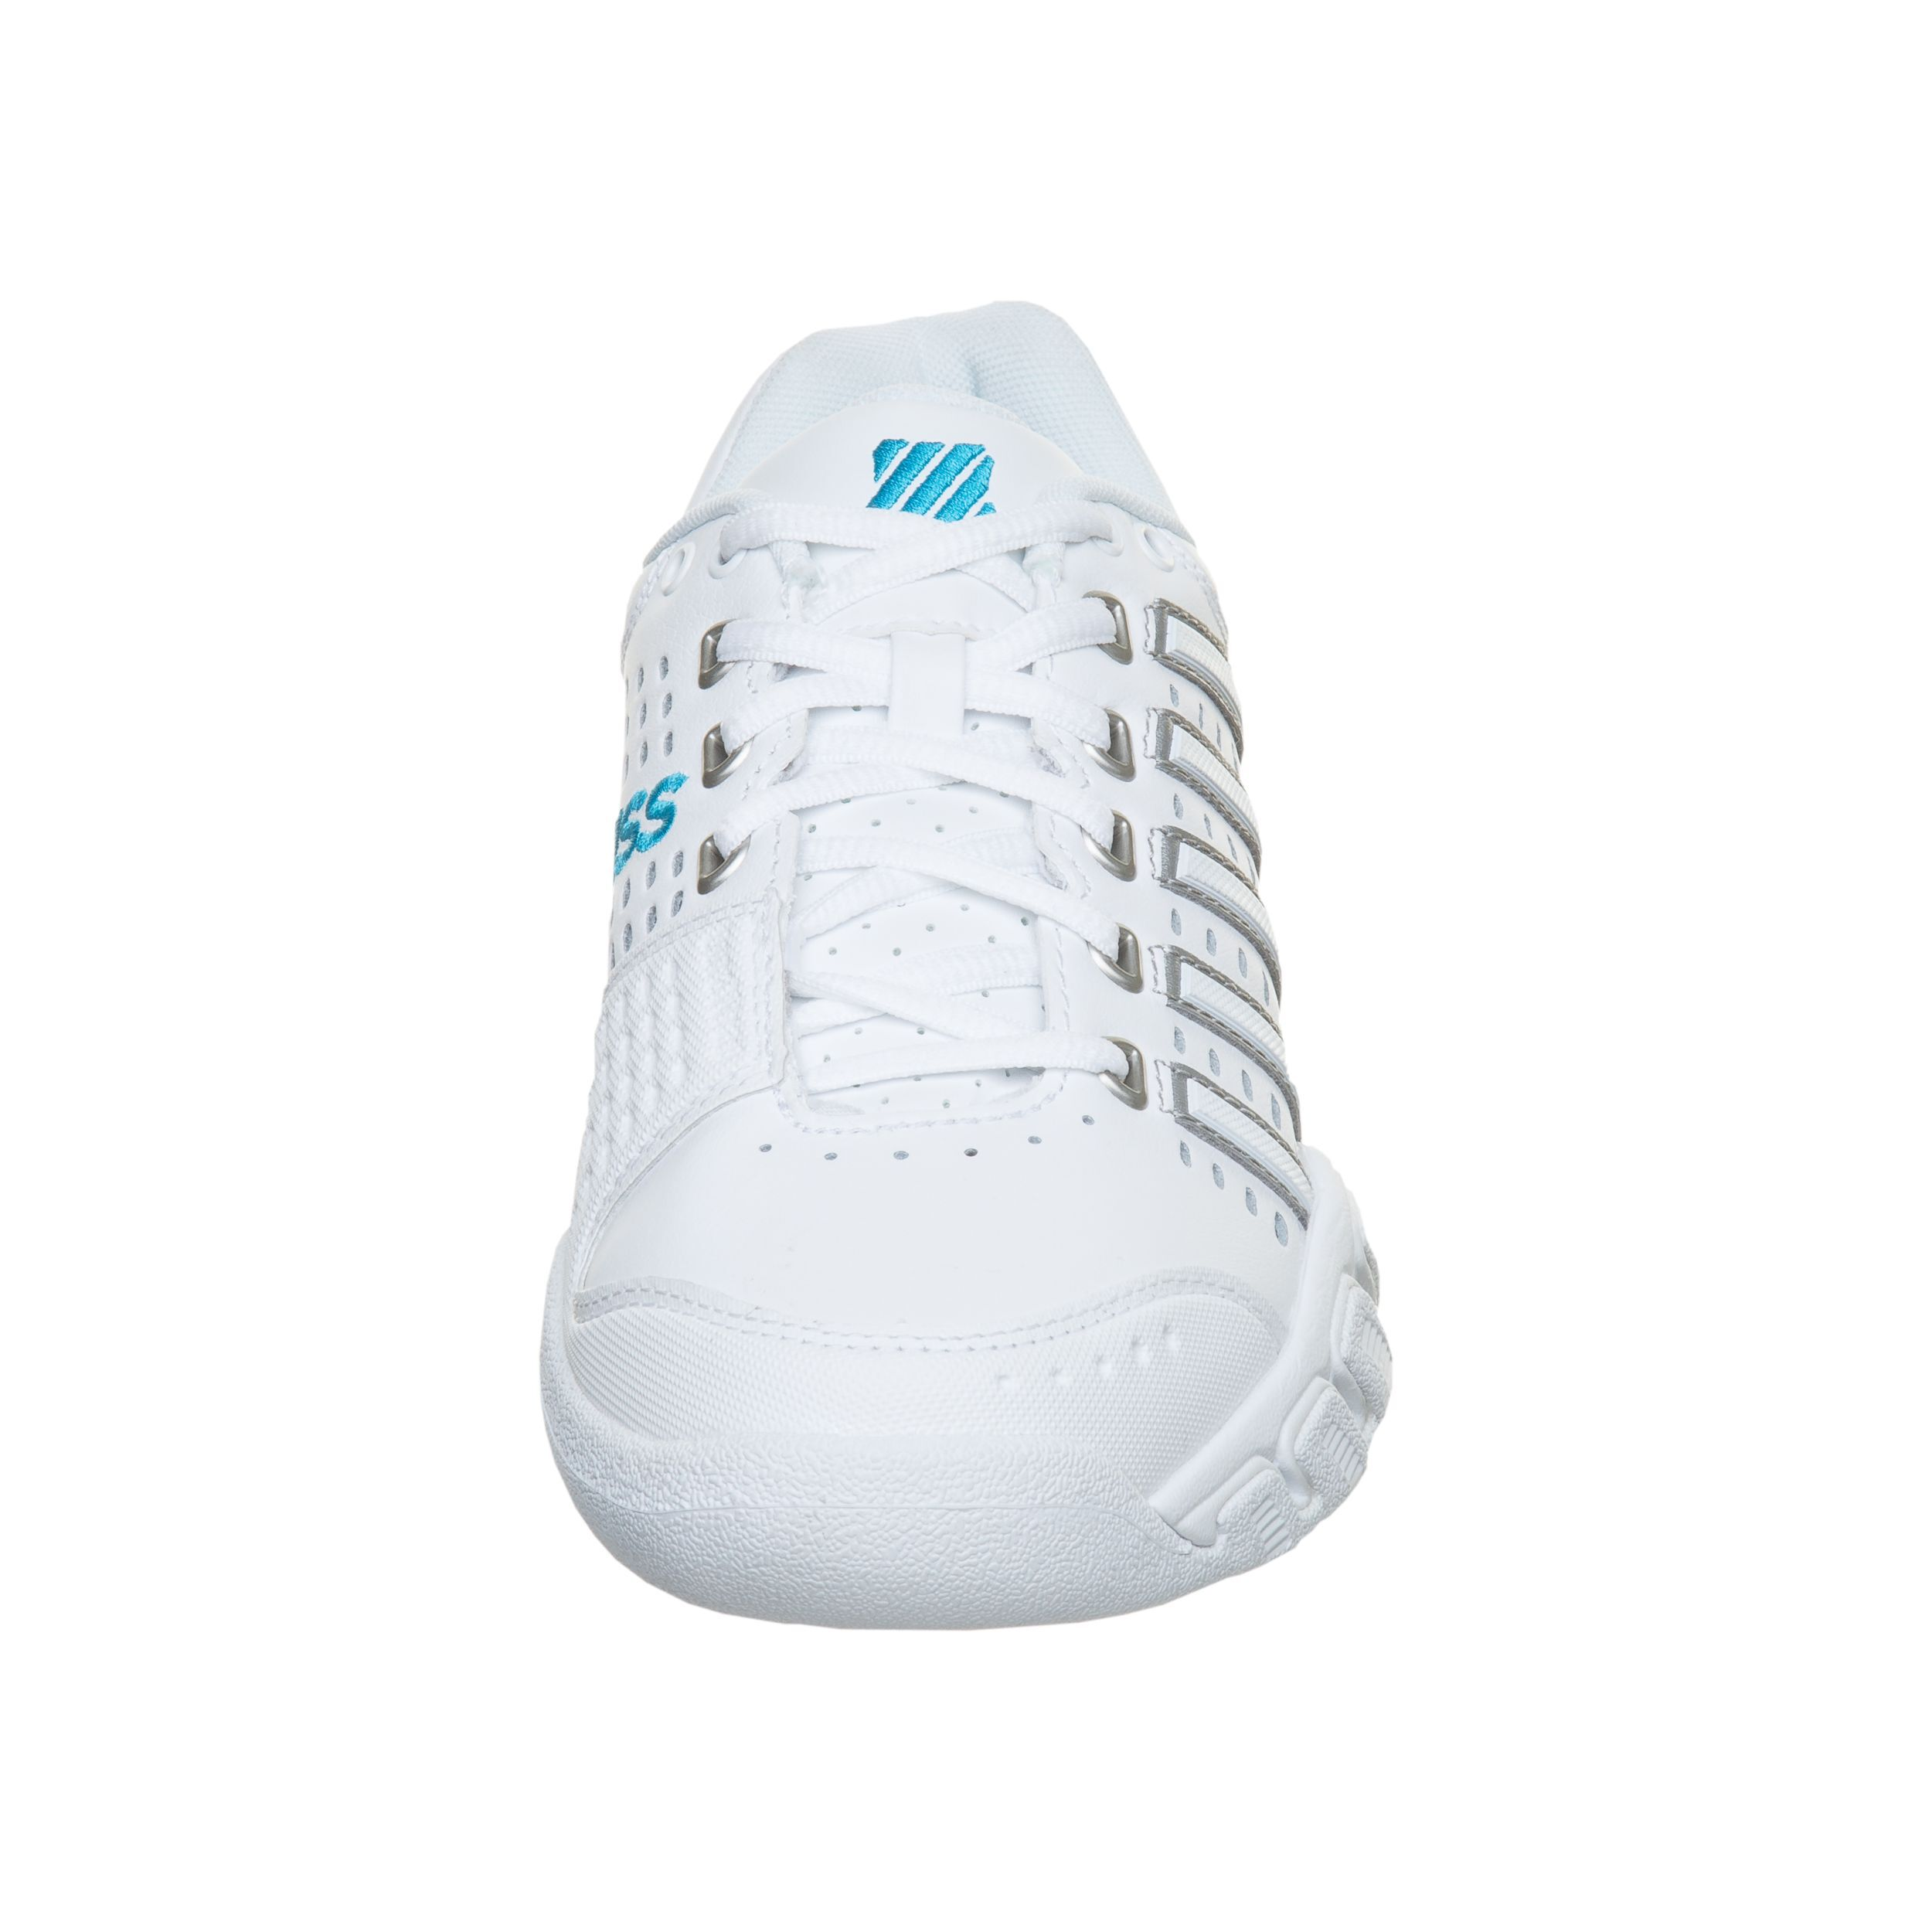 K Swiss Big Shot Light LTR Carpet Teppichschuh Damen Weiß